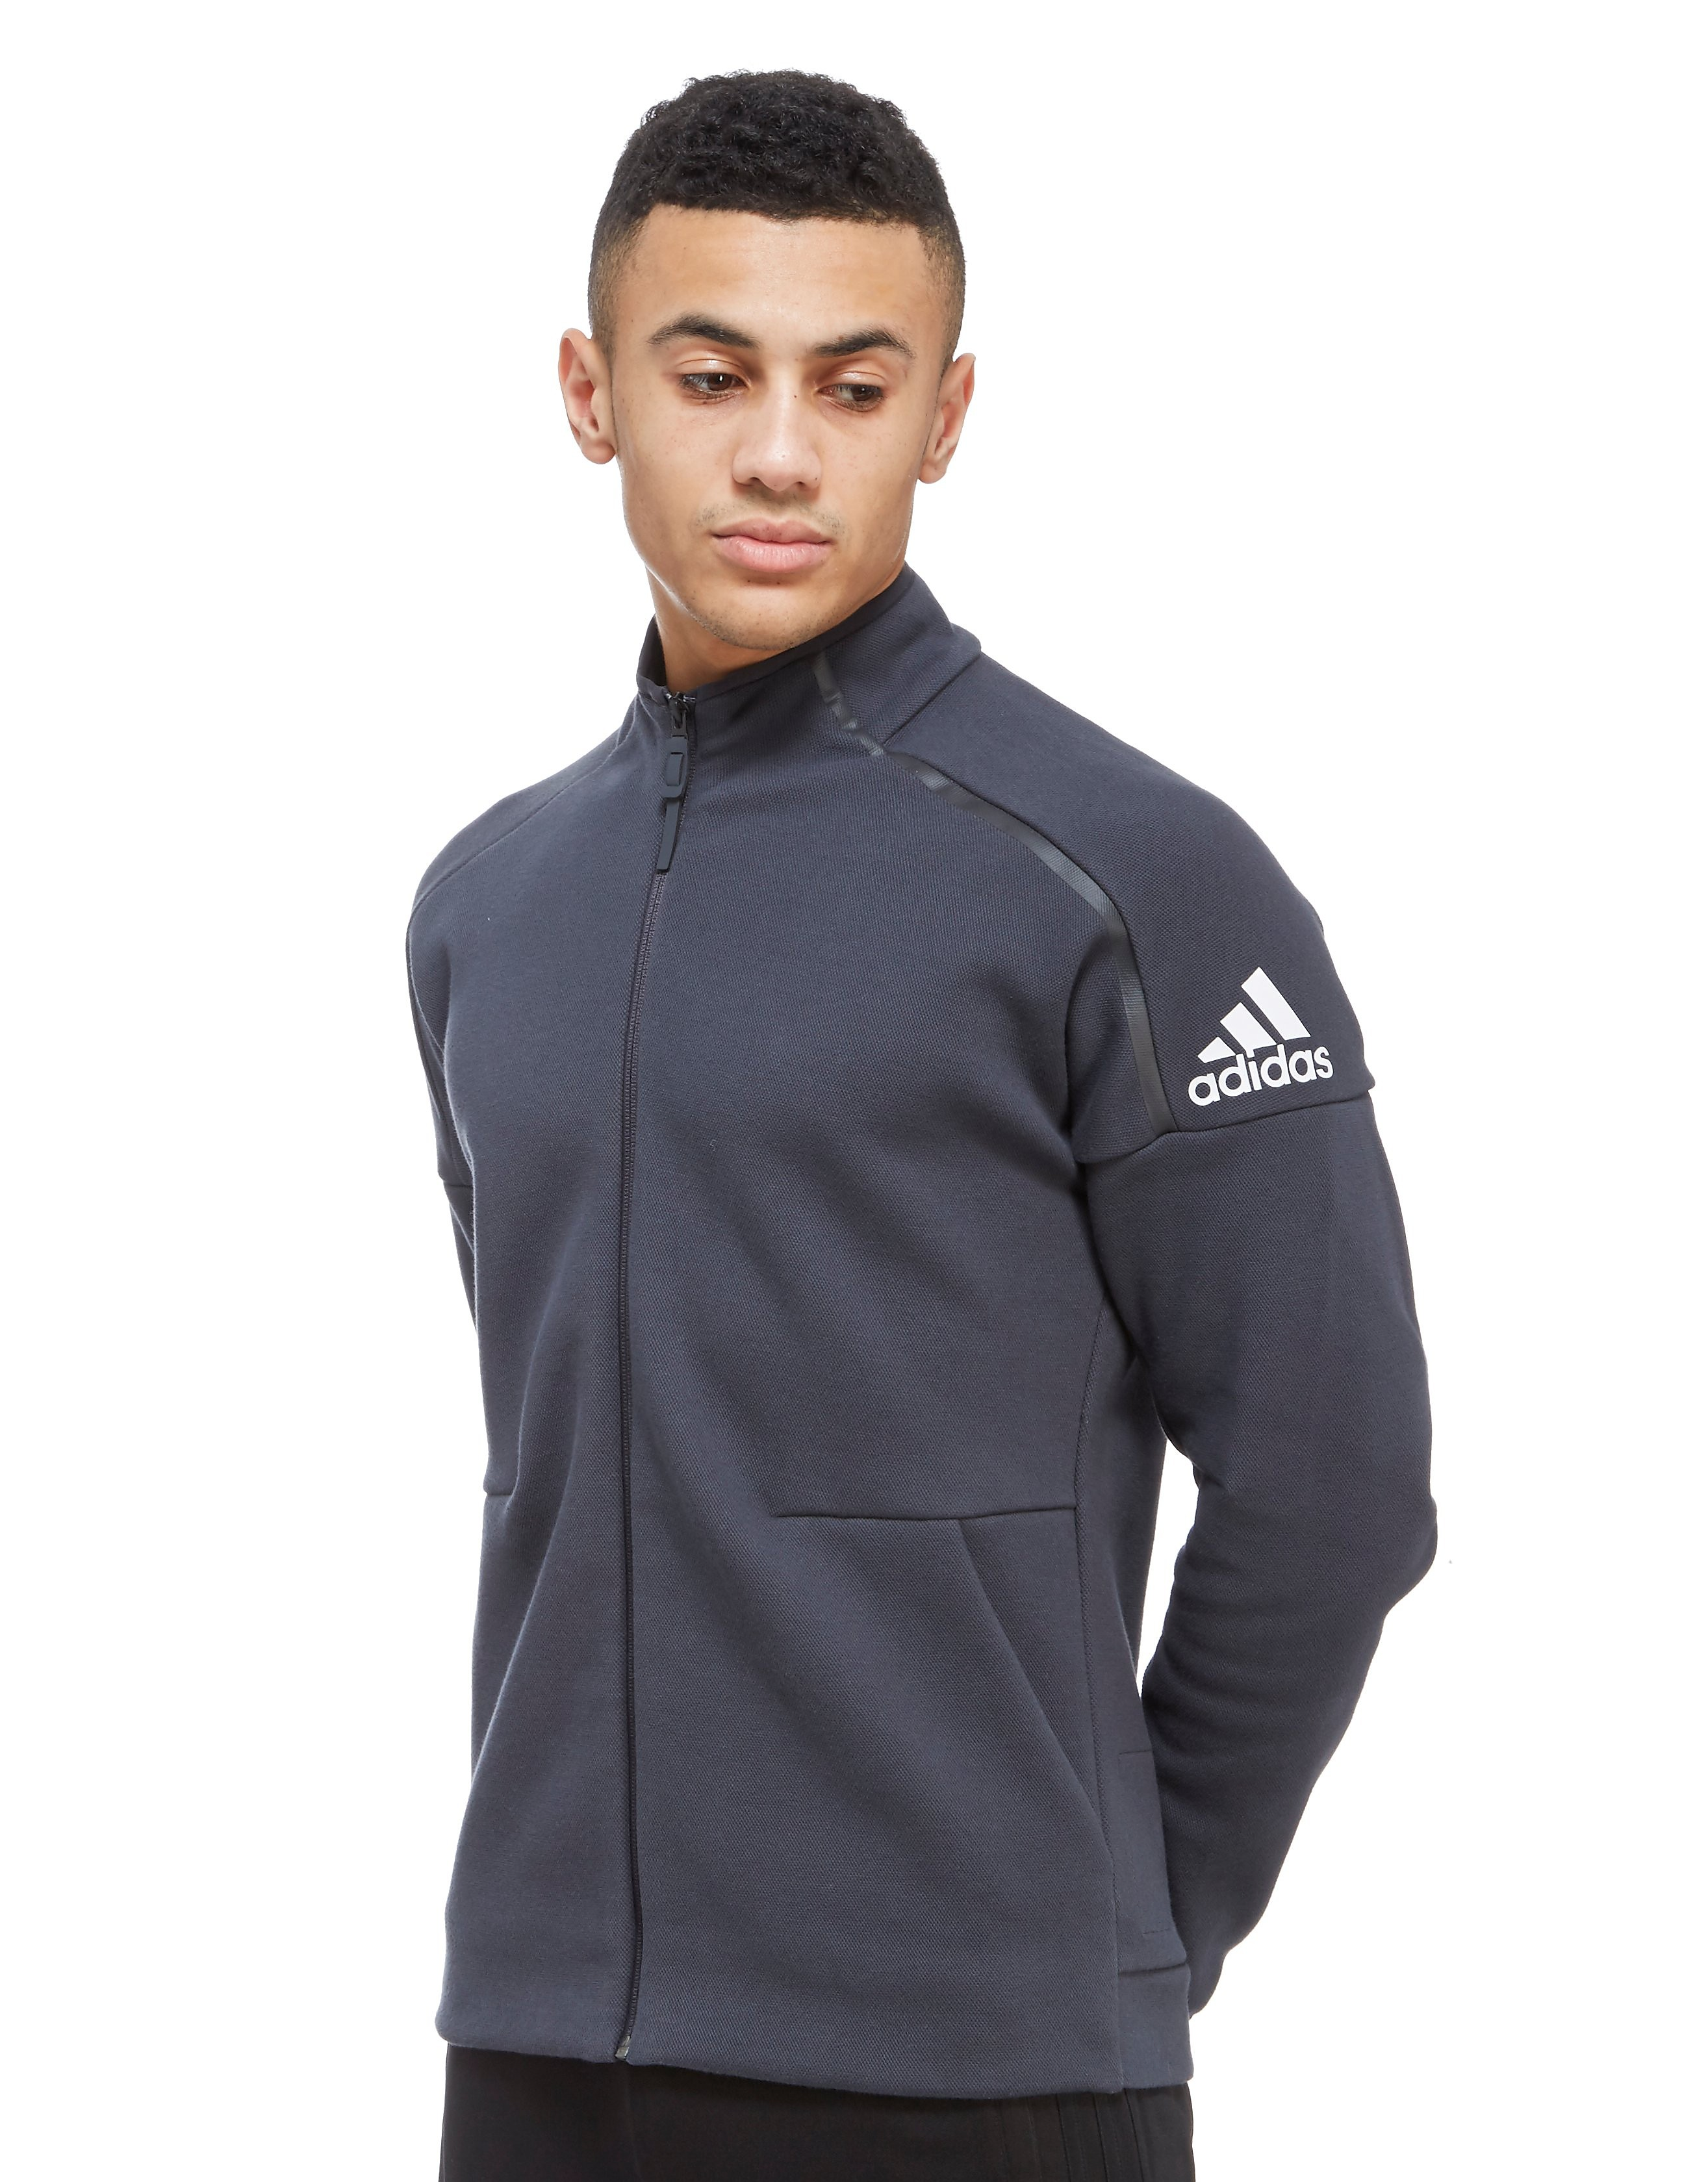 adidas Z.N.E Track Top